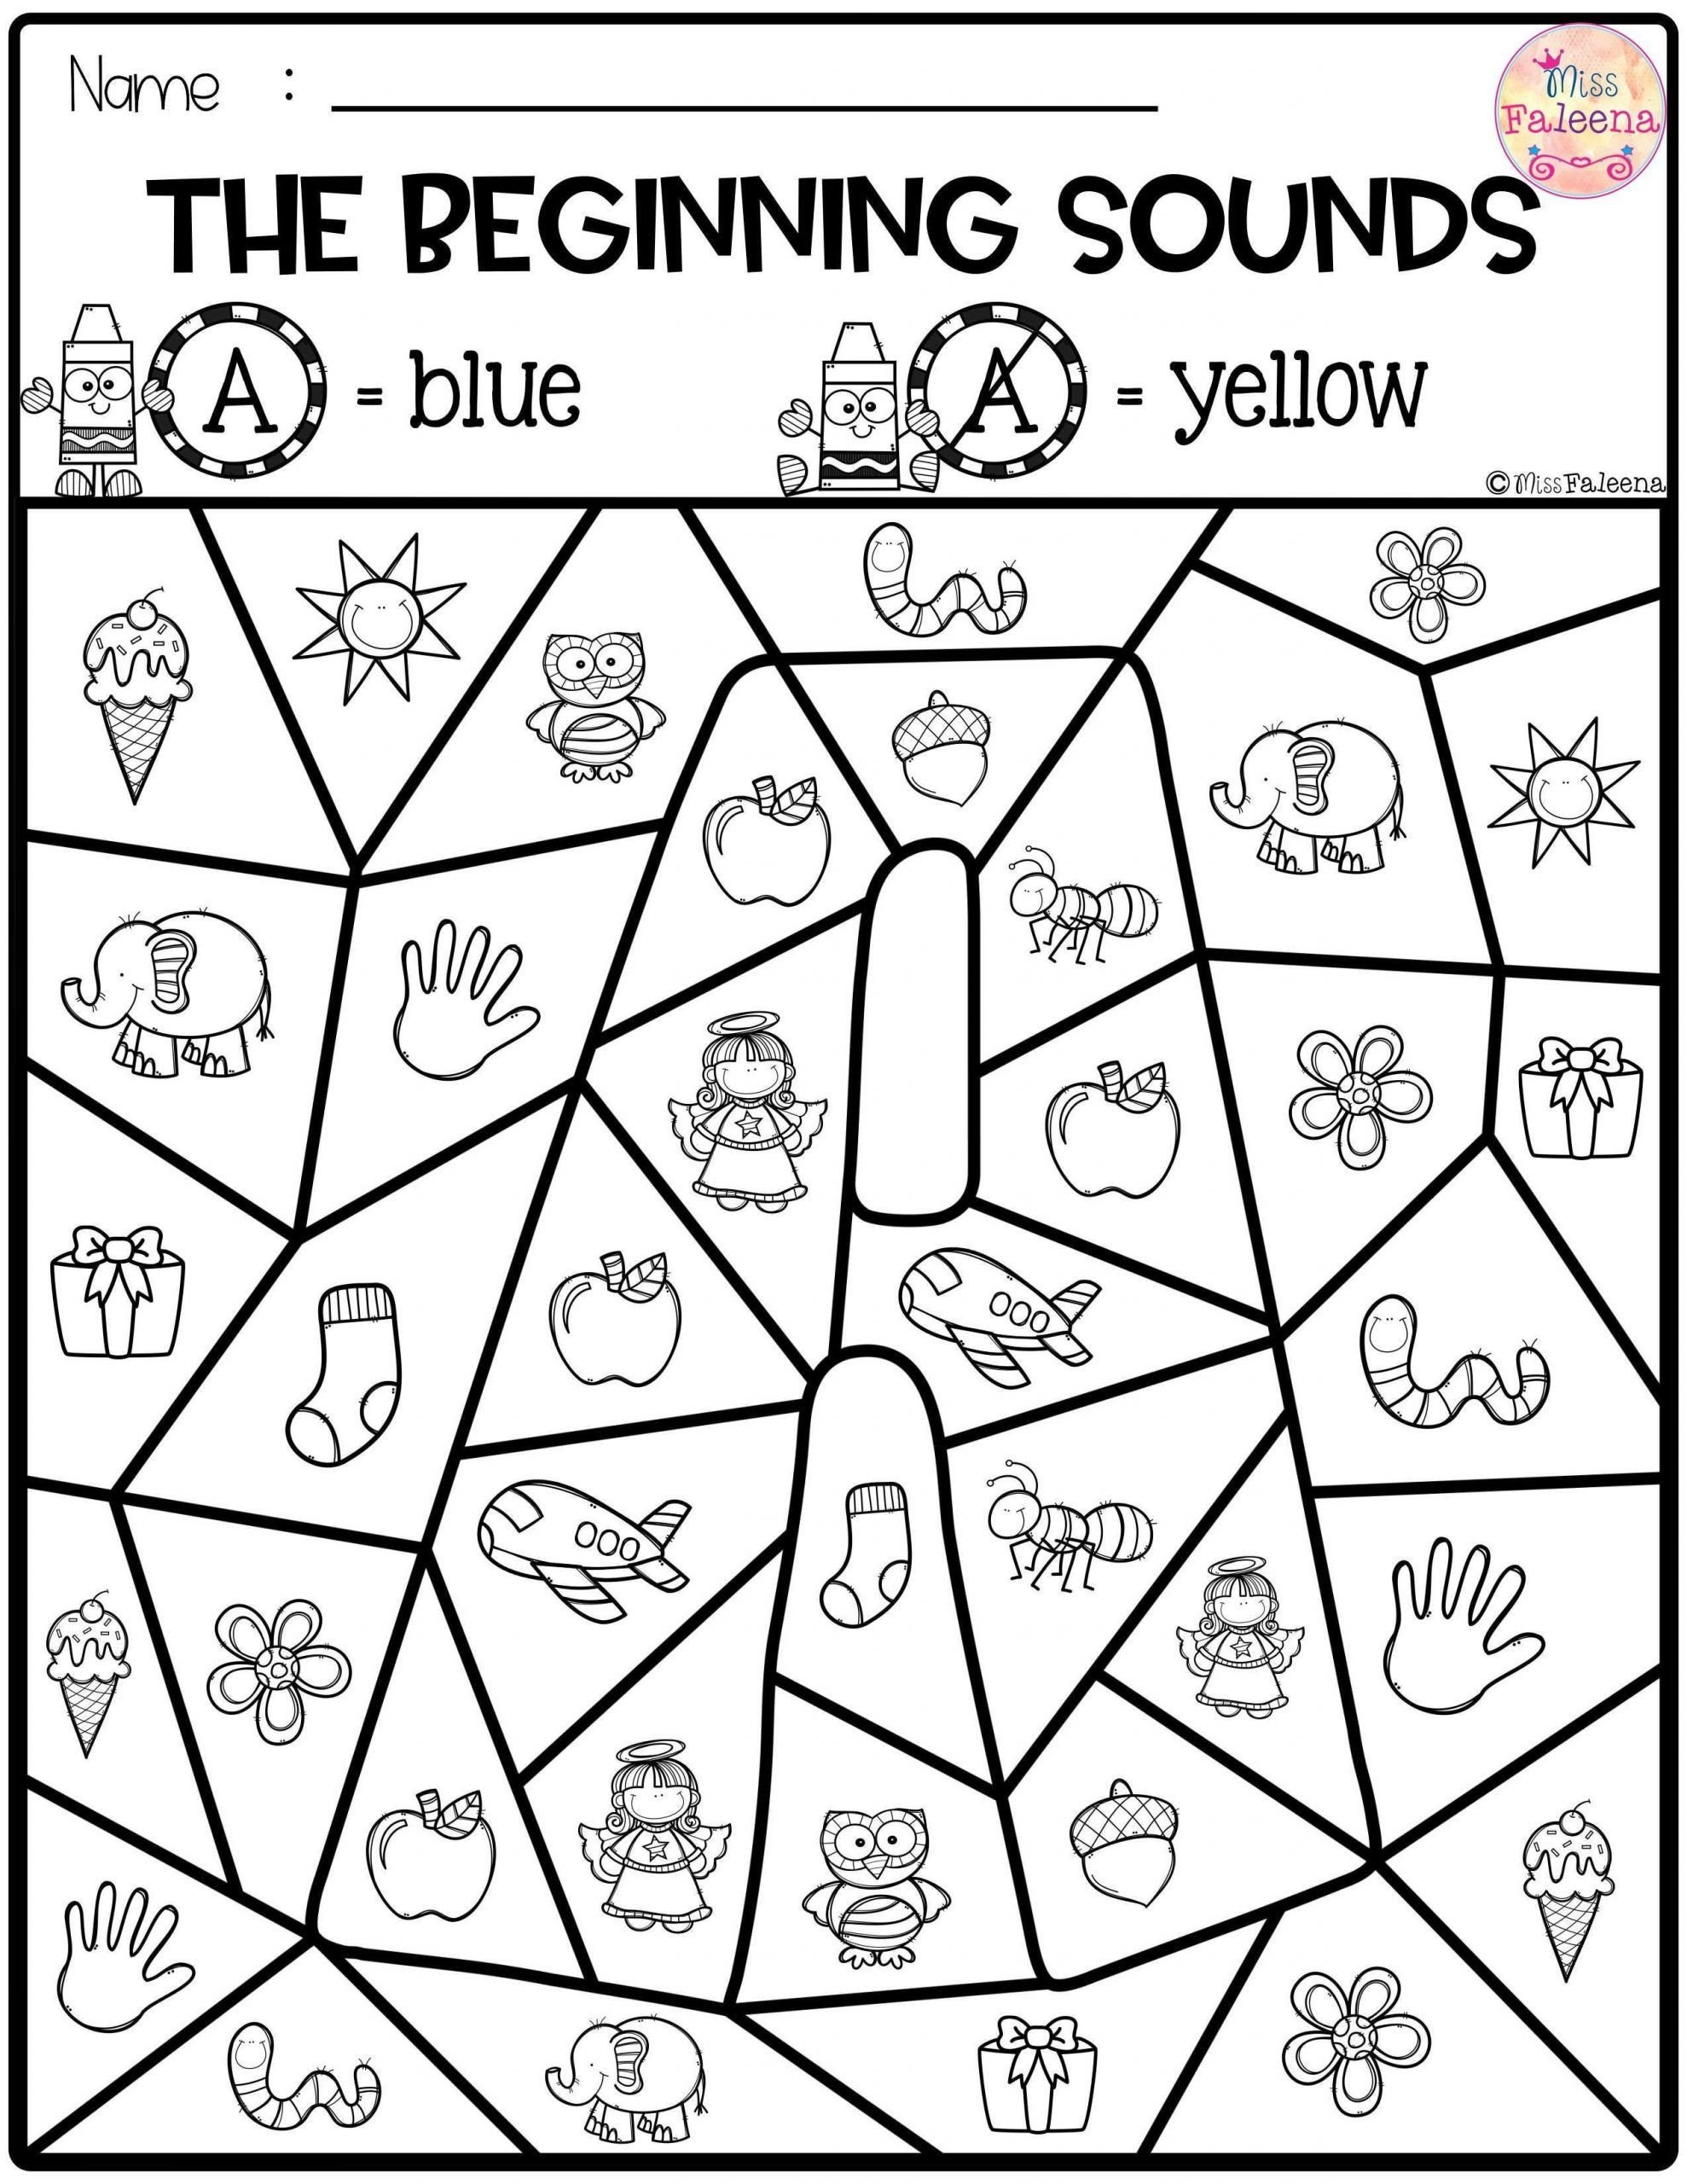 worksheet free preschool kindergarten worksheets beginning phonics analog clock 2nd grade geometric patterns 7th and 8th math square dot paper template stuff for 6th graders 4th